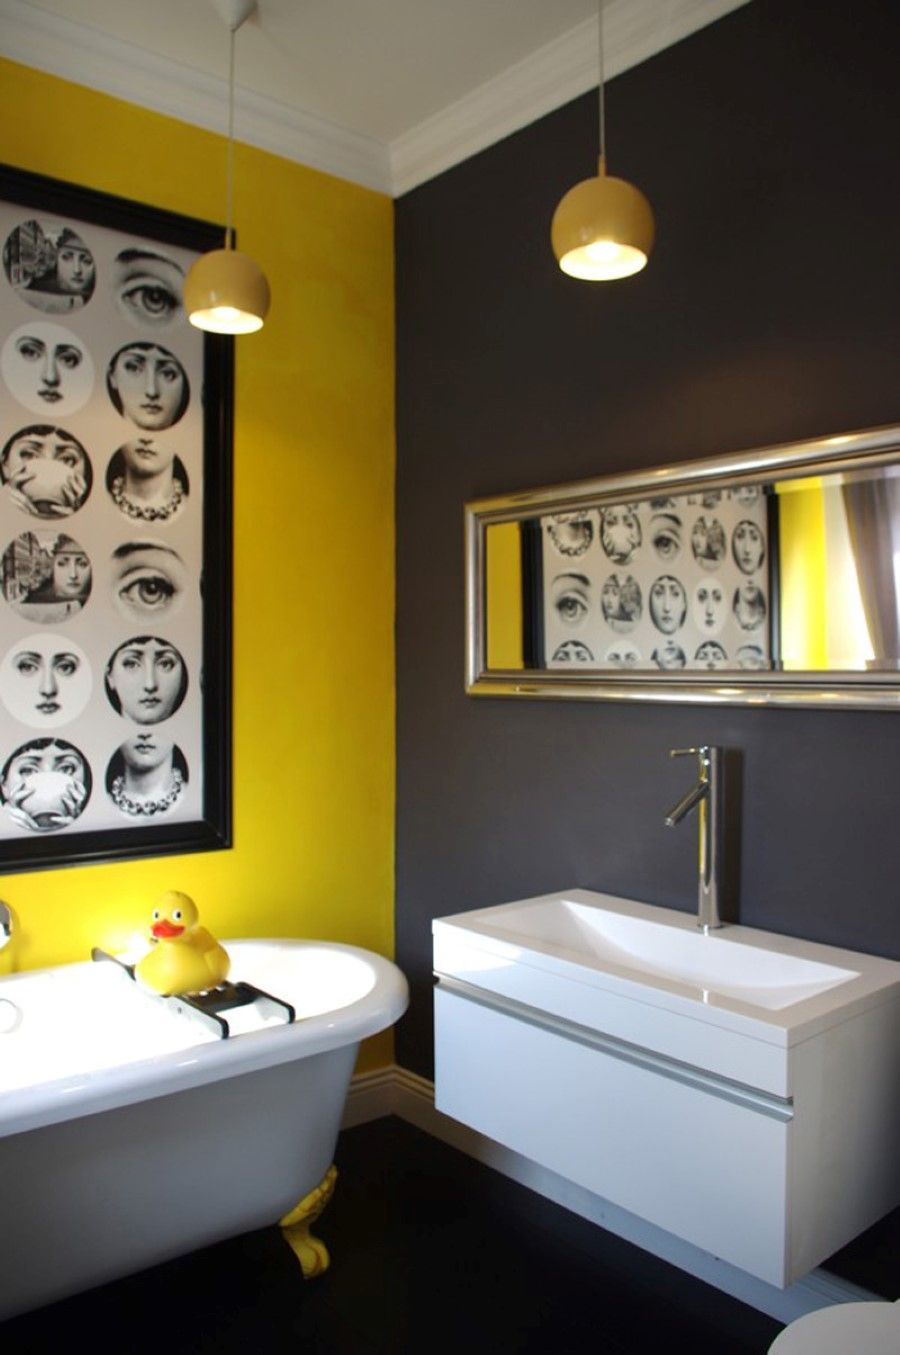 Unique Yellow Bathroom Idea Plus Floating Sink Design Feat Funky ...